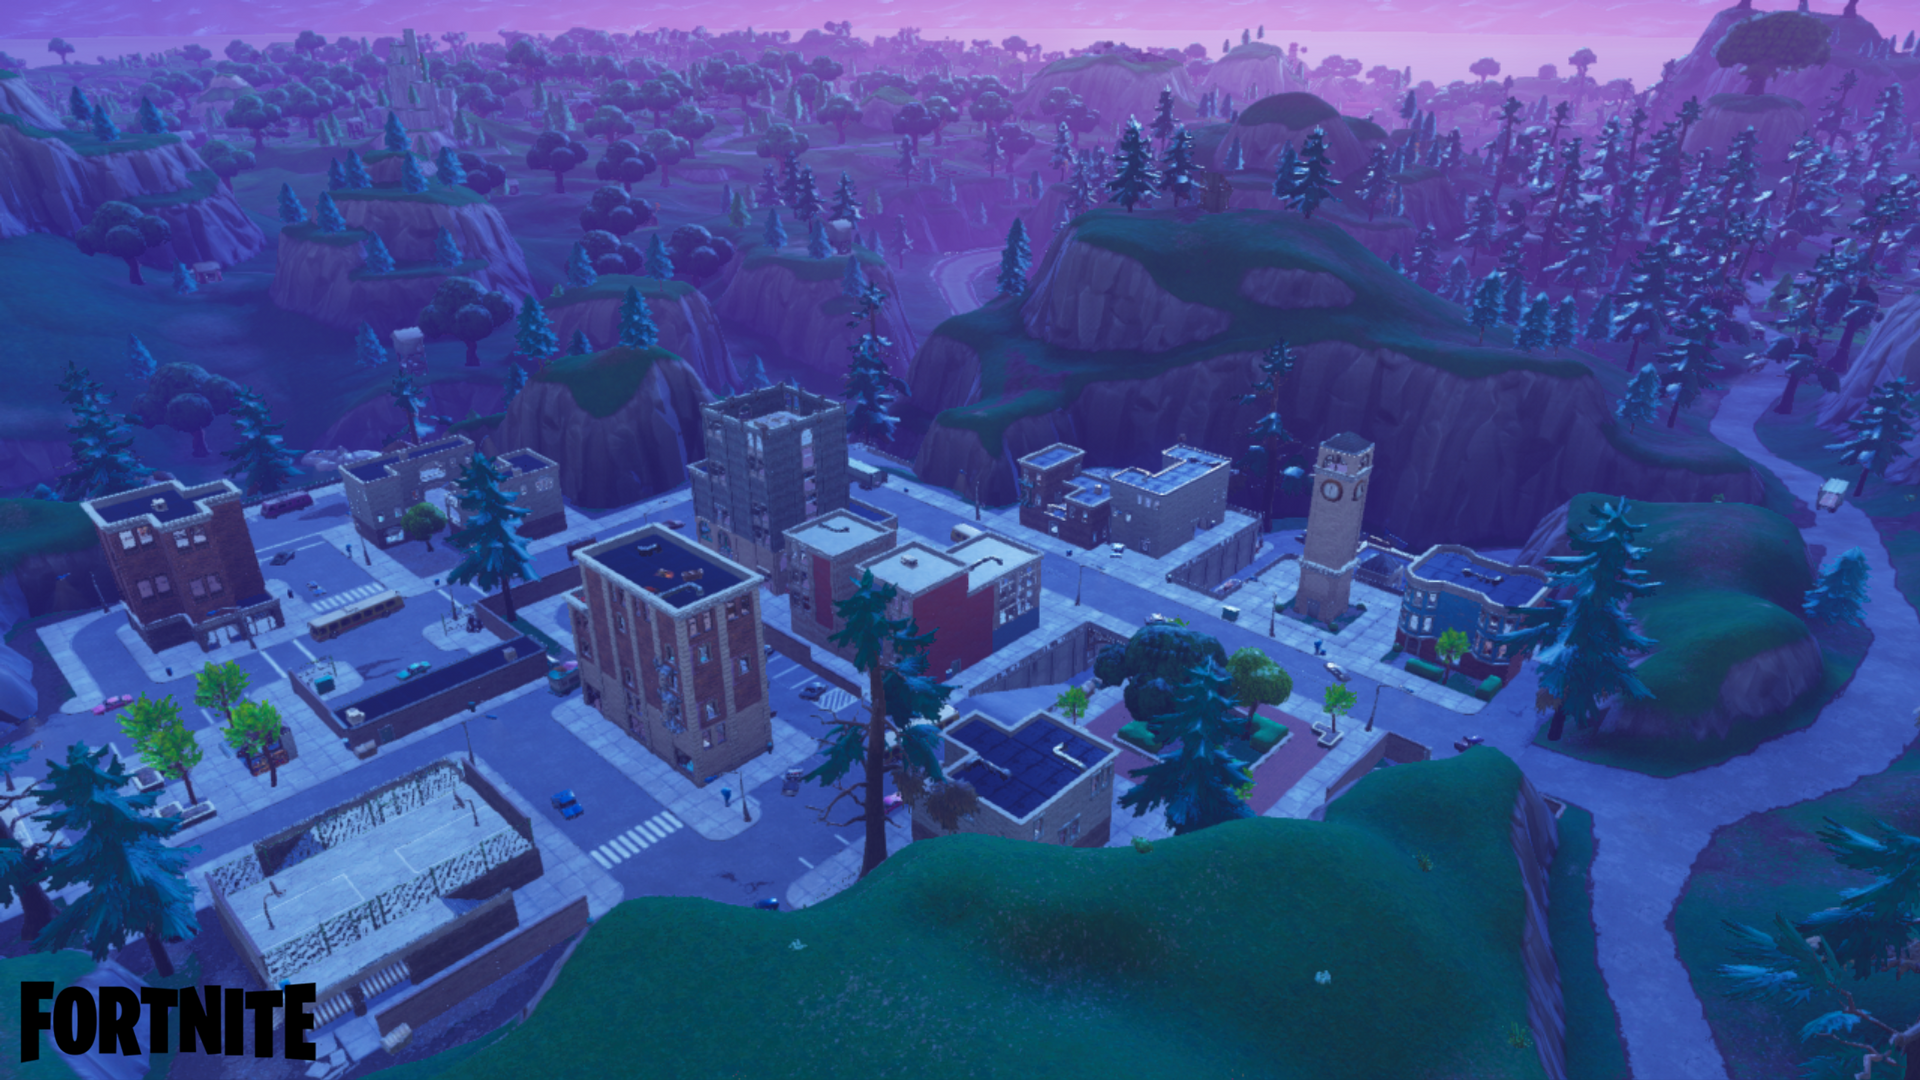 Download Fortnite Tilted Towers Wallpaper Hd Backgrounds Download Itl Cat